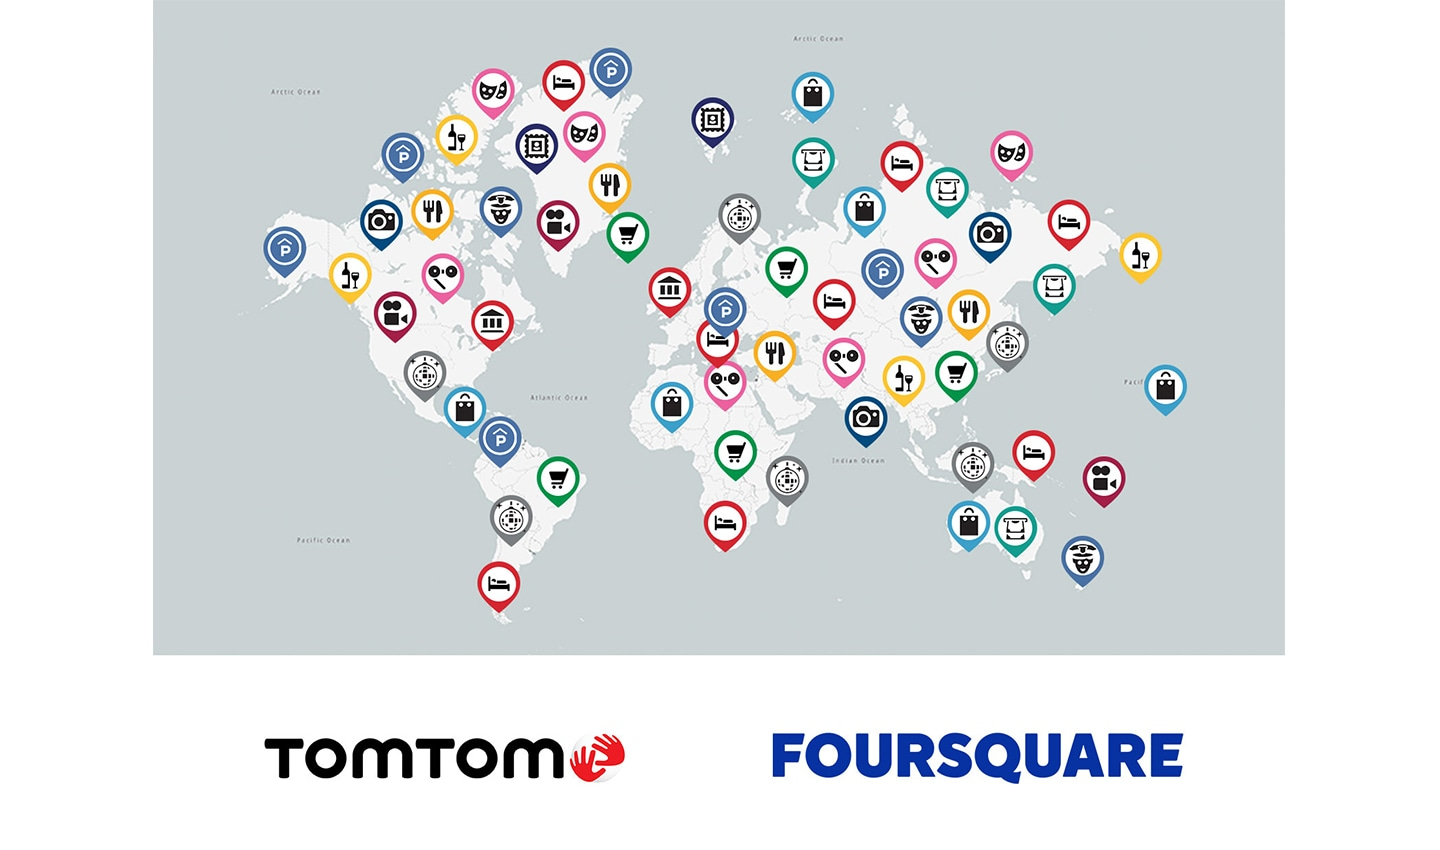 TomTom is partnering with Foursquare to integrate millions of new POIs into our database.